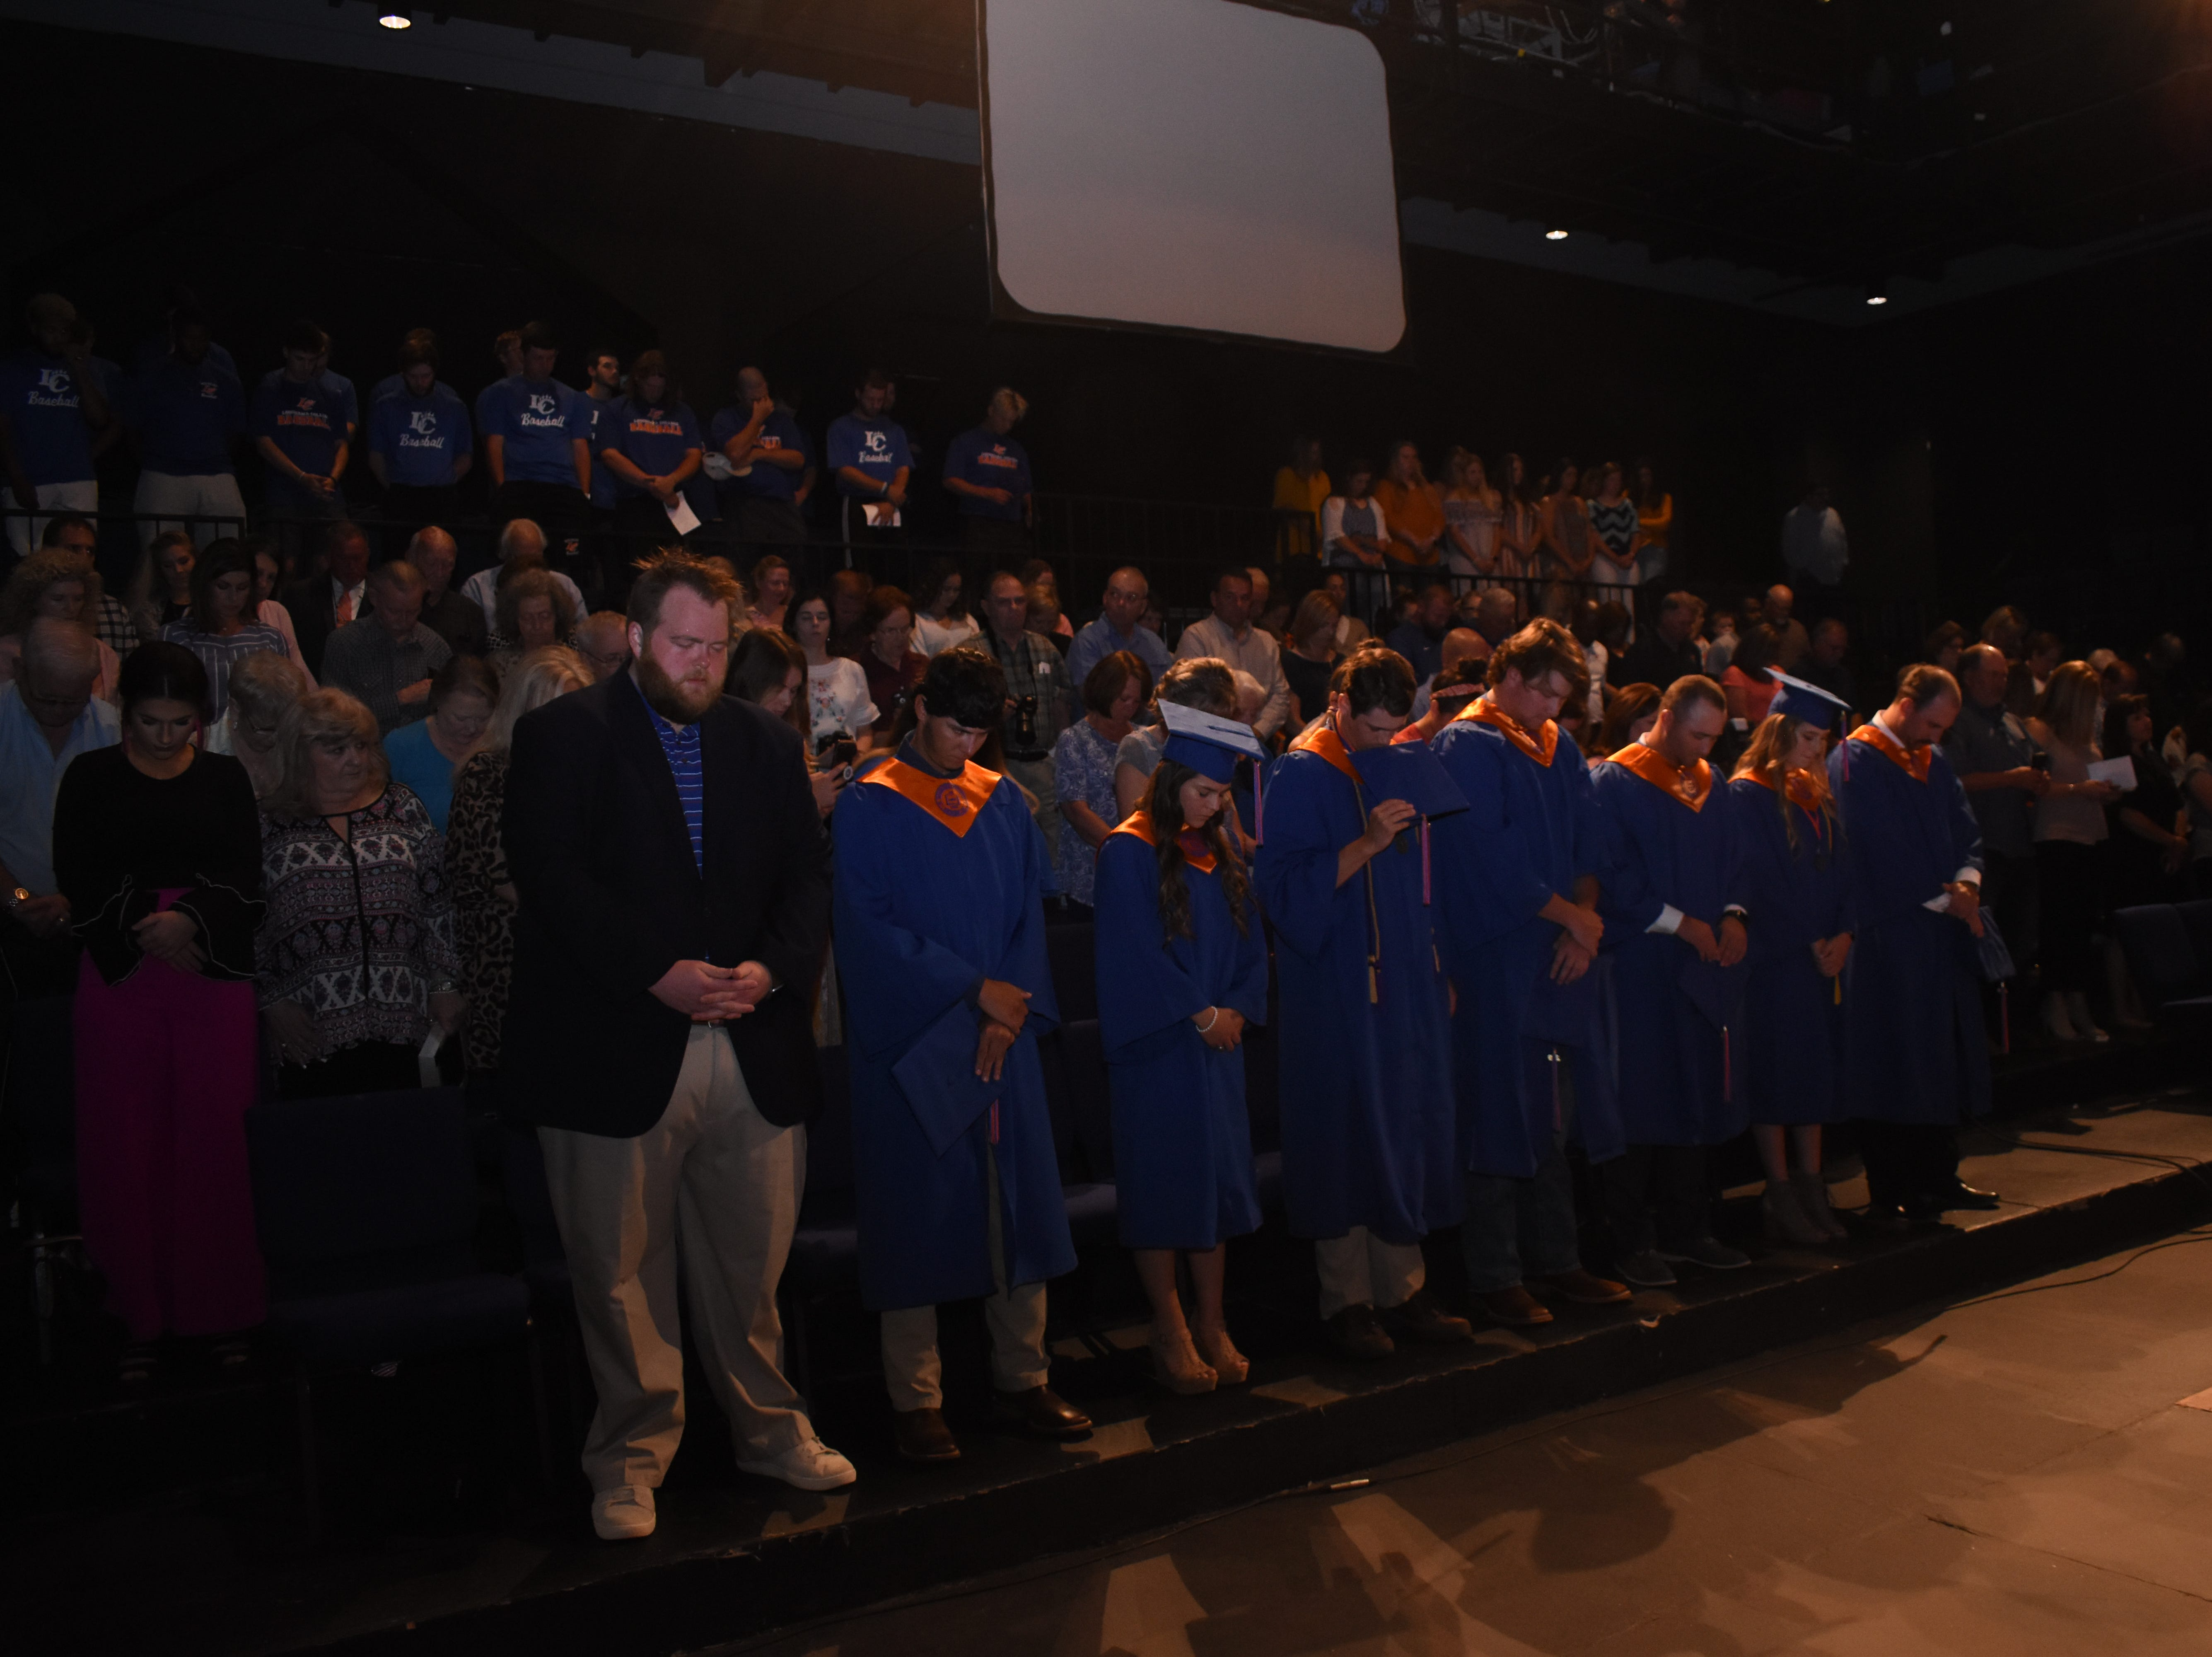 Louisiana College held an early commencement ceremony for thirteen baseball and softball players Wednesday, May 1, 2019 in the Martin Perfoming Arts Center on the LC campus. The players are headed to ASC tournaments over the weekend when LC plans to hold their 164th commencement ceremony at the Rapides Parish Coliseum. Graduates in Wednesday's ceremony are: Shelby Grace Bergeron; Hunter James Bower, Dunc Edward Cornfoot, Deauton Richard Delgado, Peyton Ranae Eschette, Sydney Renee Falcon, Dylan Andrew Keller, Kourtney Lyn LeBlanc, Titan Keith Marler, Brayden Leander Miles, Kalen Scott Parker, Alyssa Gail Ross and Phillip Wayne Vidrine. Johnny Martin, chairman of Martin Sustainable Resources at Roy O. Martin, will be the speaker at Saturday's commencement ceremony.